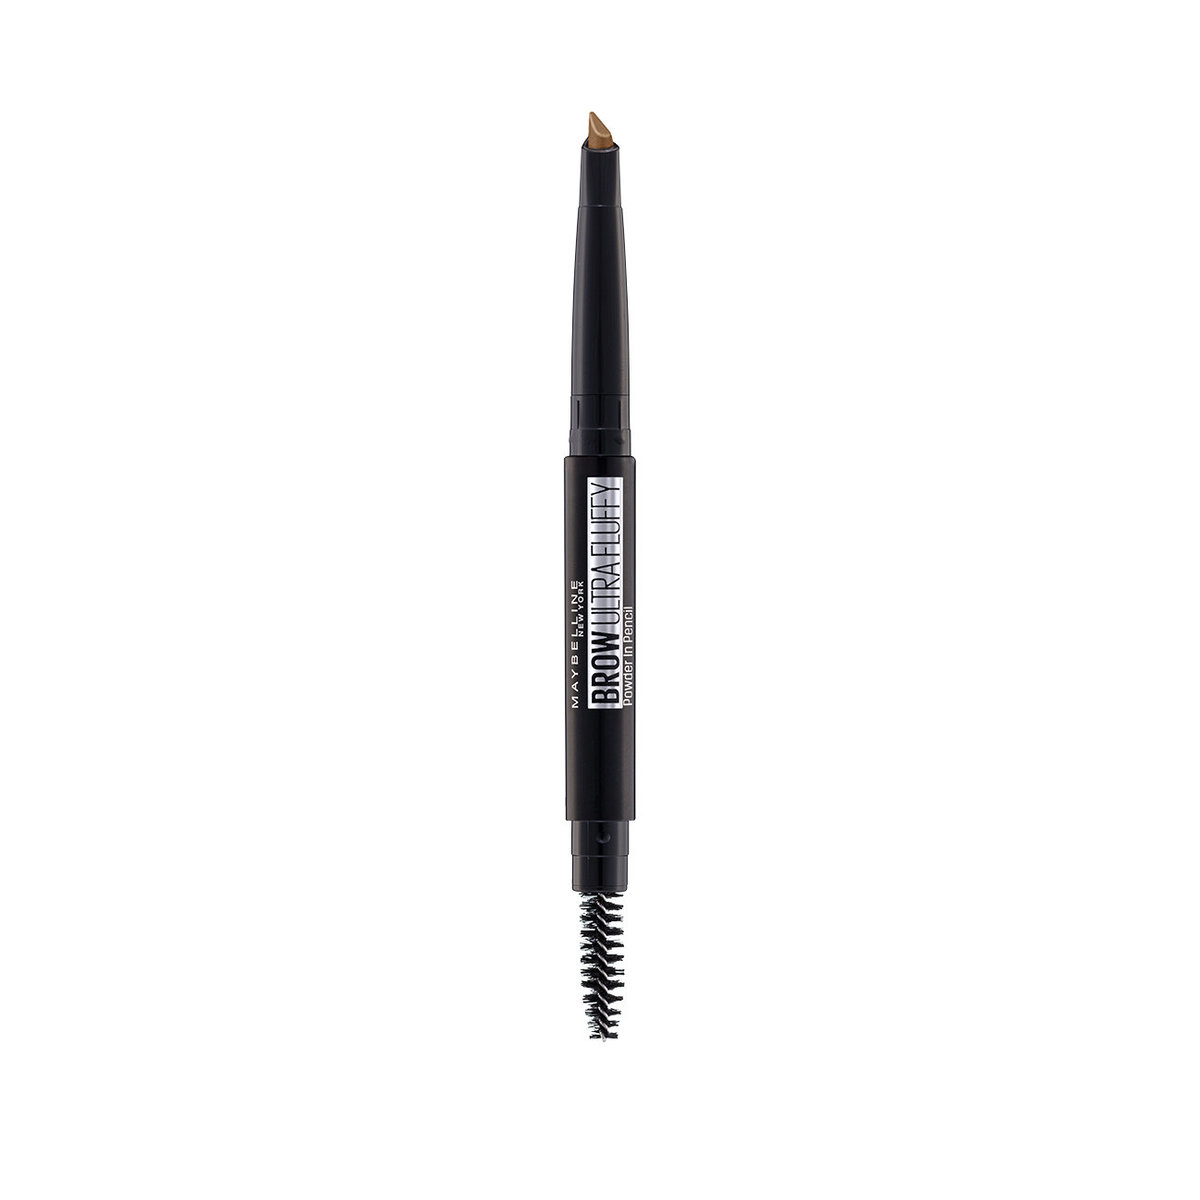 Brow Ultra Fluffy Powder in Pencil Br3 Red Brown